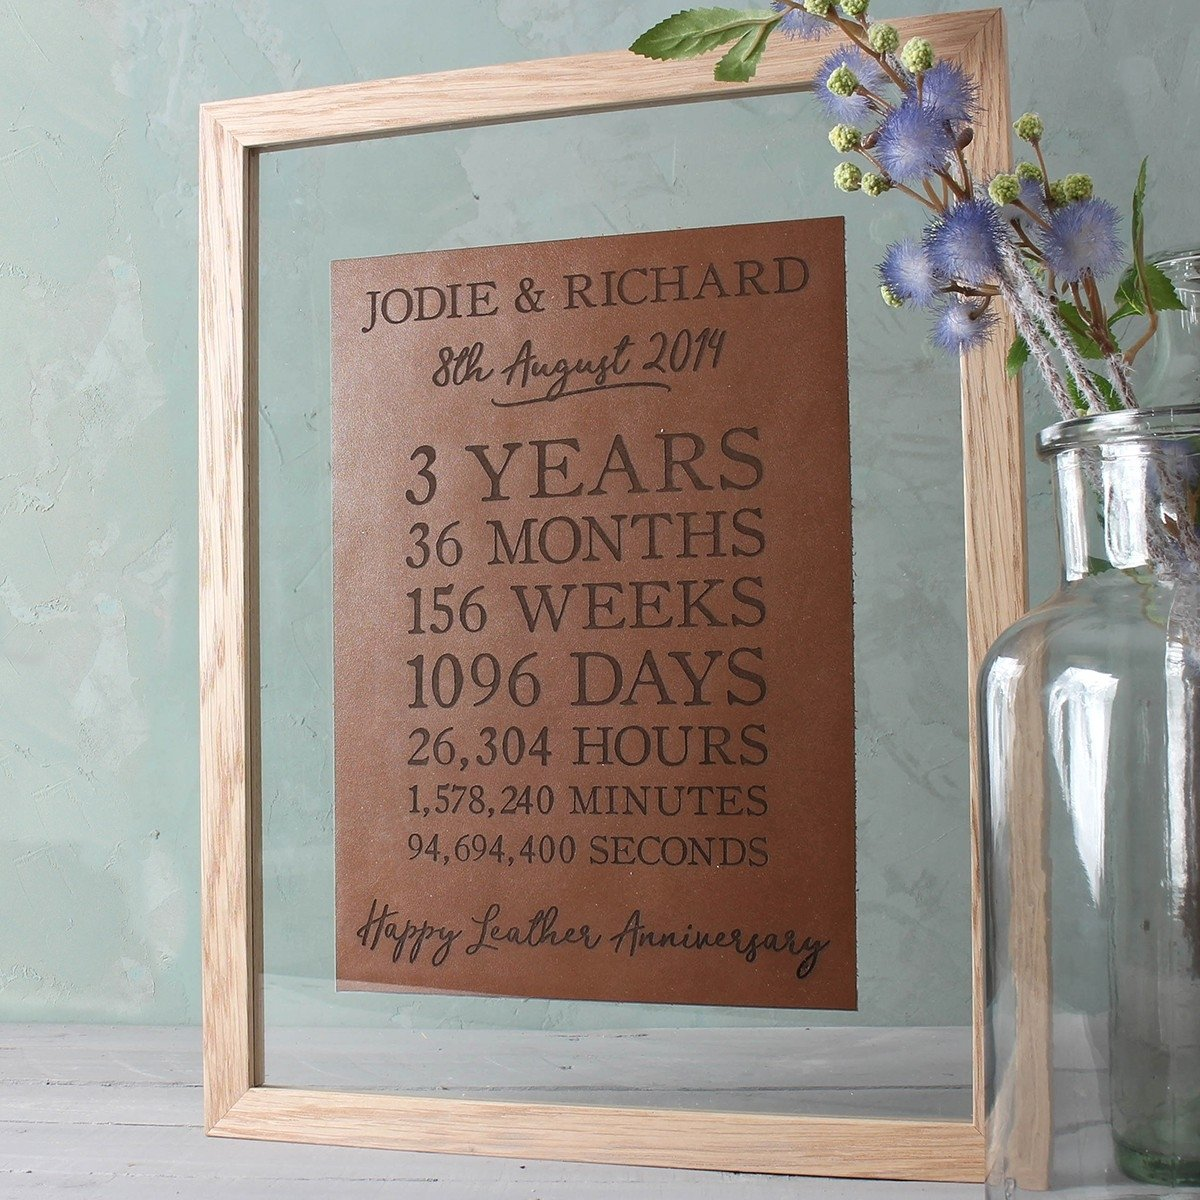 Wedding Anniversary Gifts For Husband Ideas: 10 Great 3Rd Year Anniversary Gift Ideas 2019